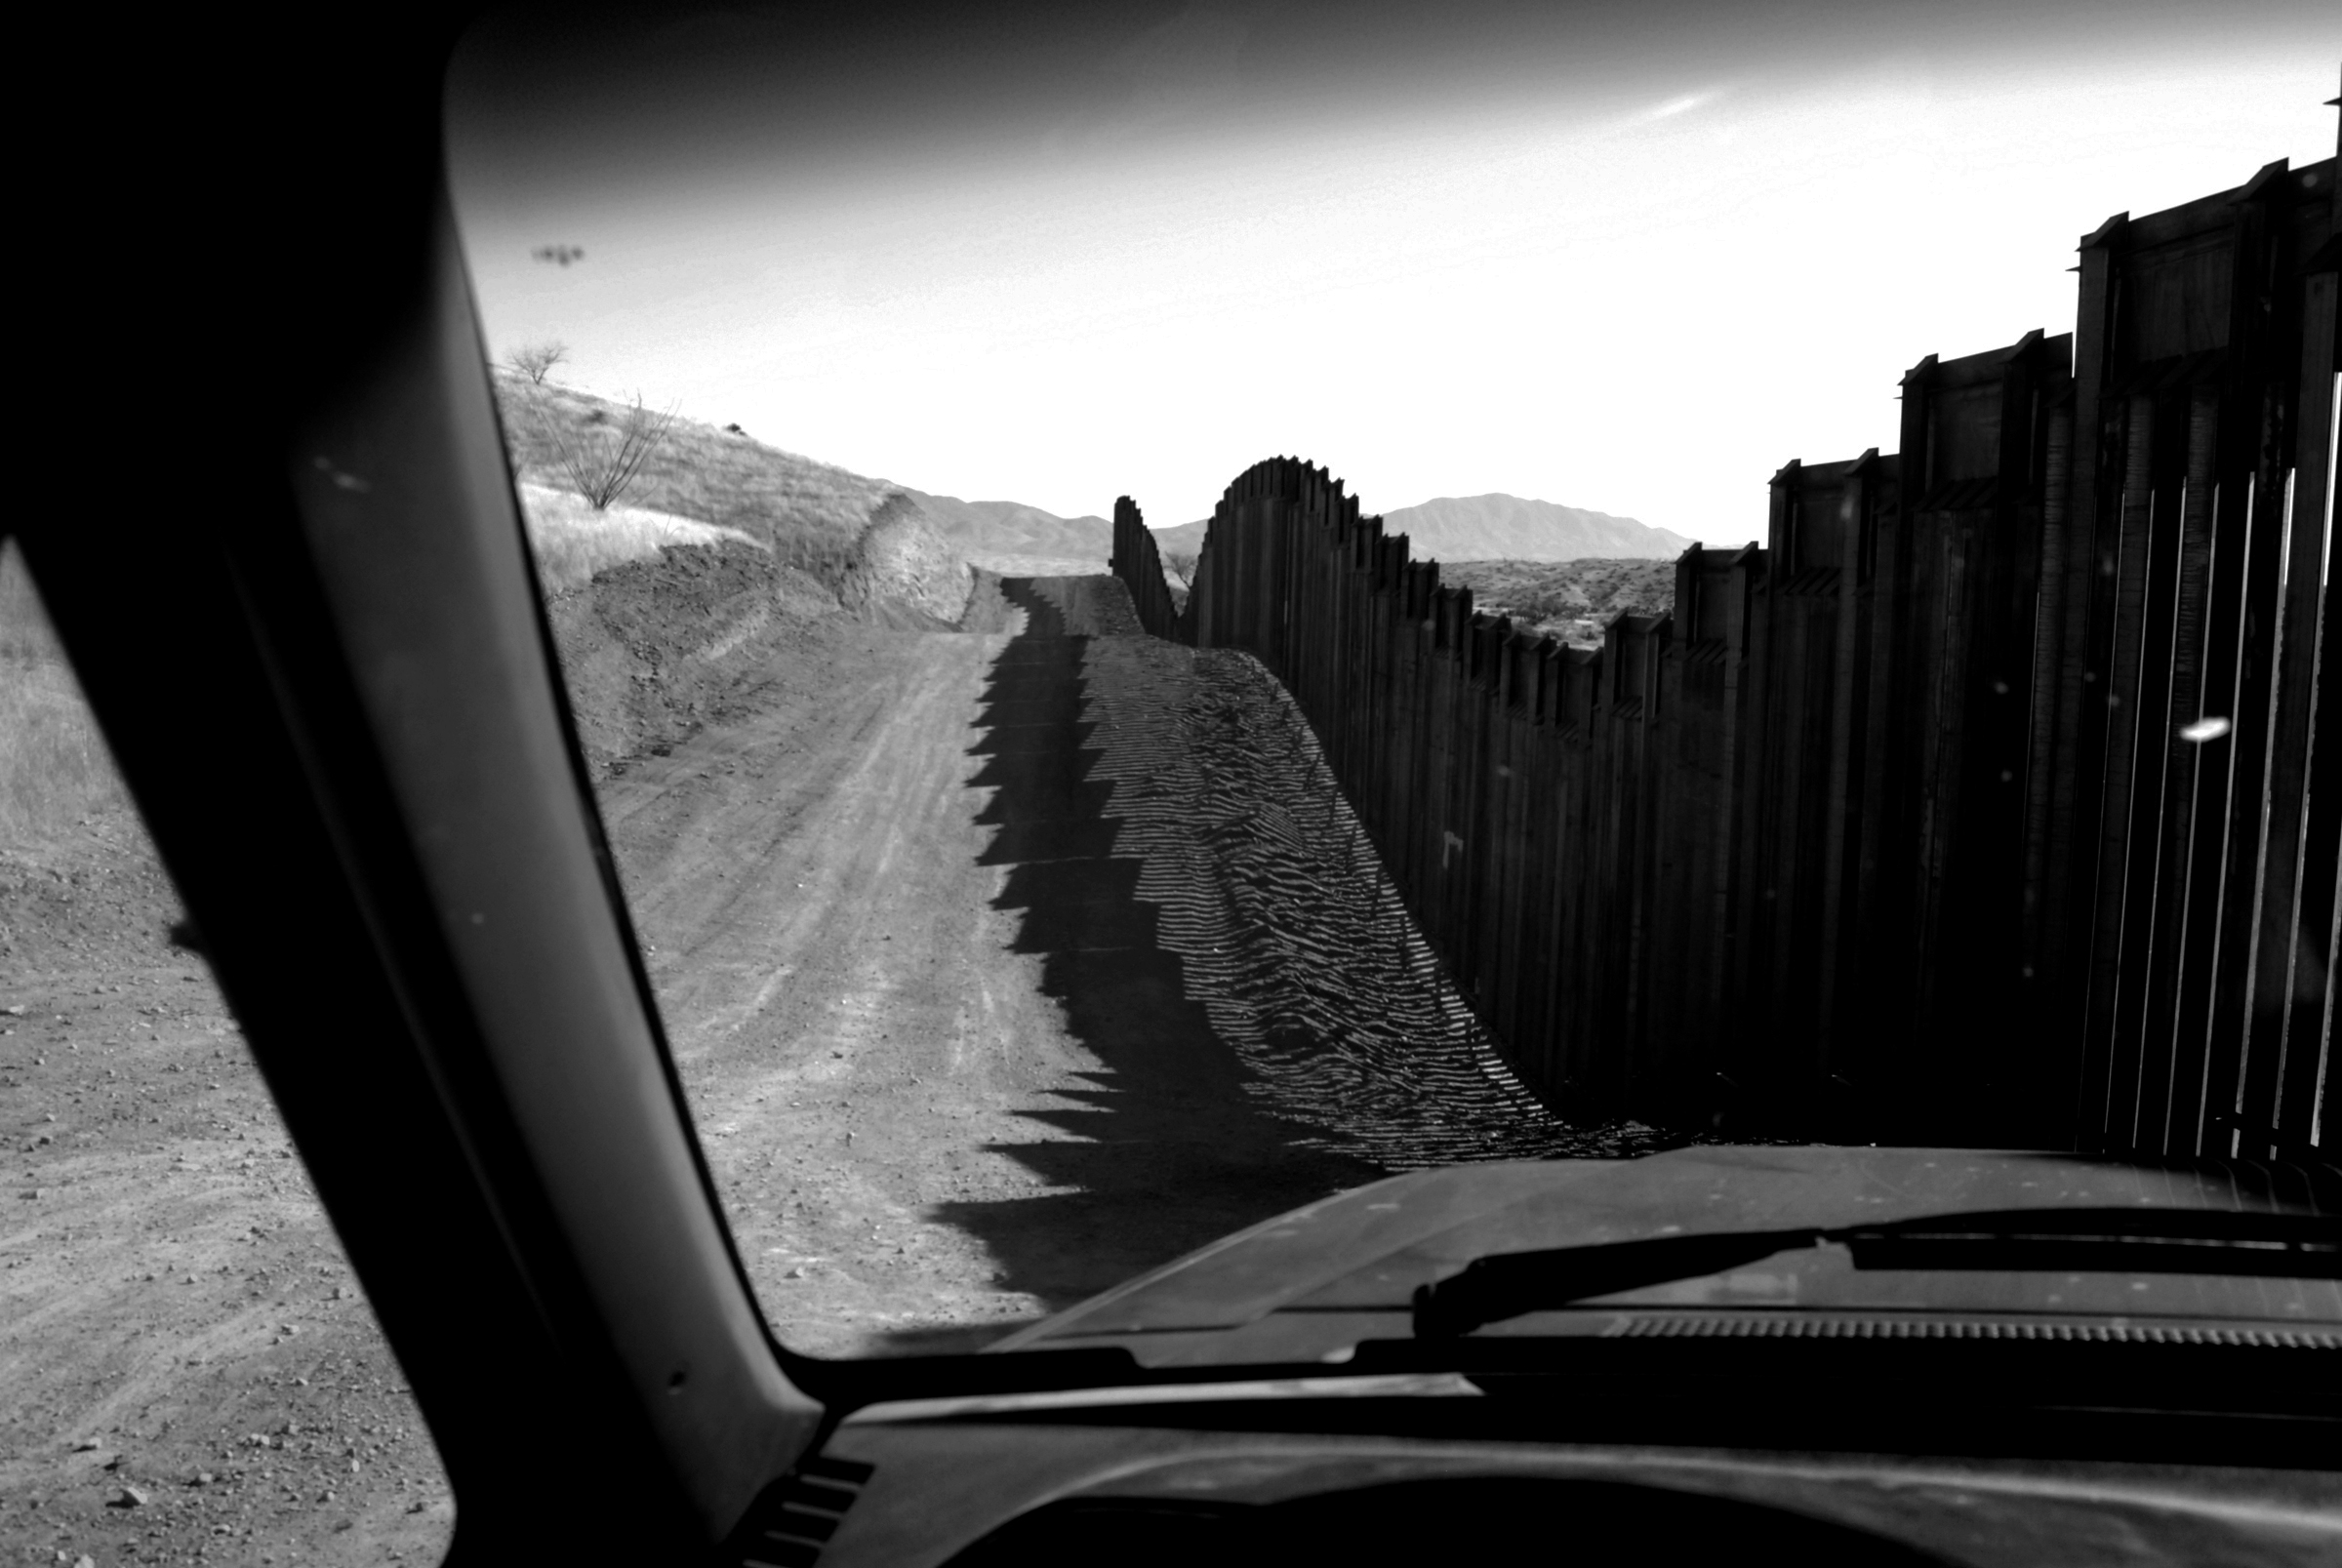 View of a dirt road and a black, undulating fence from a car